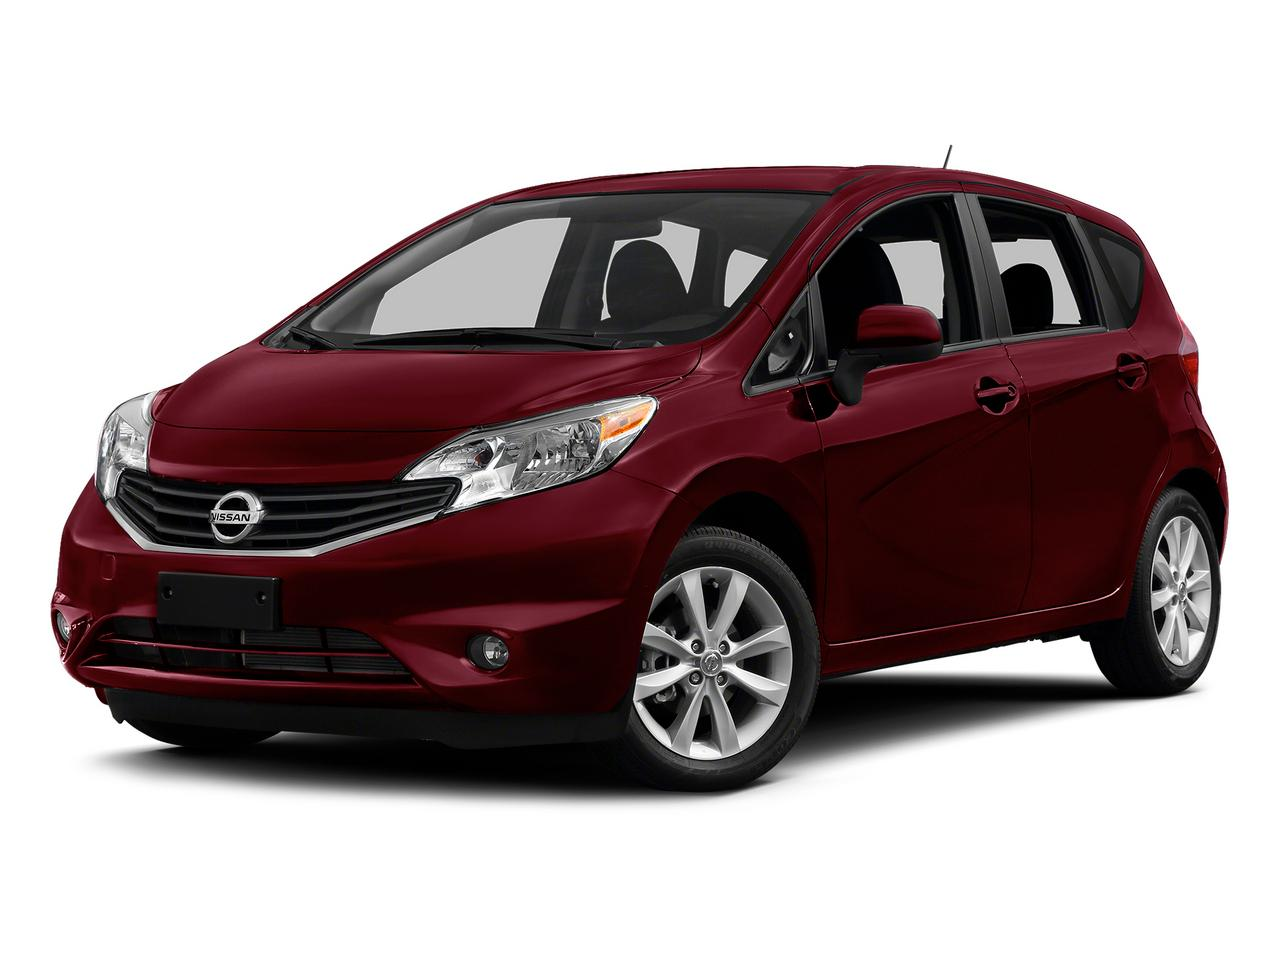 2015 Nissan Versa Note Vehicle Photo in Midland, TX 79703